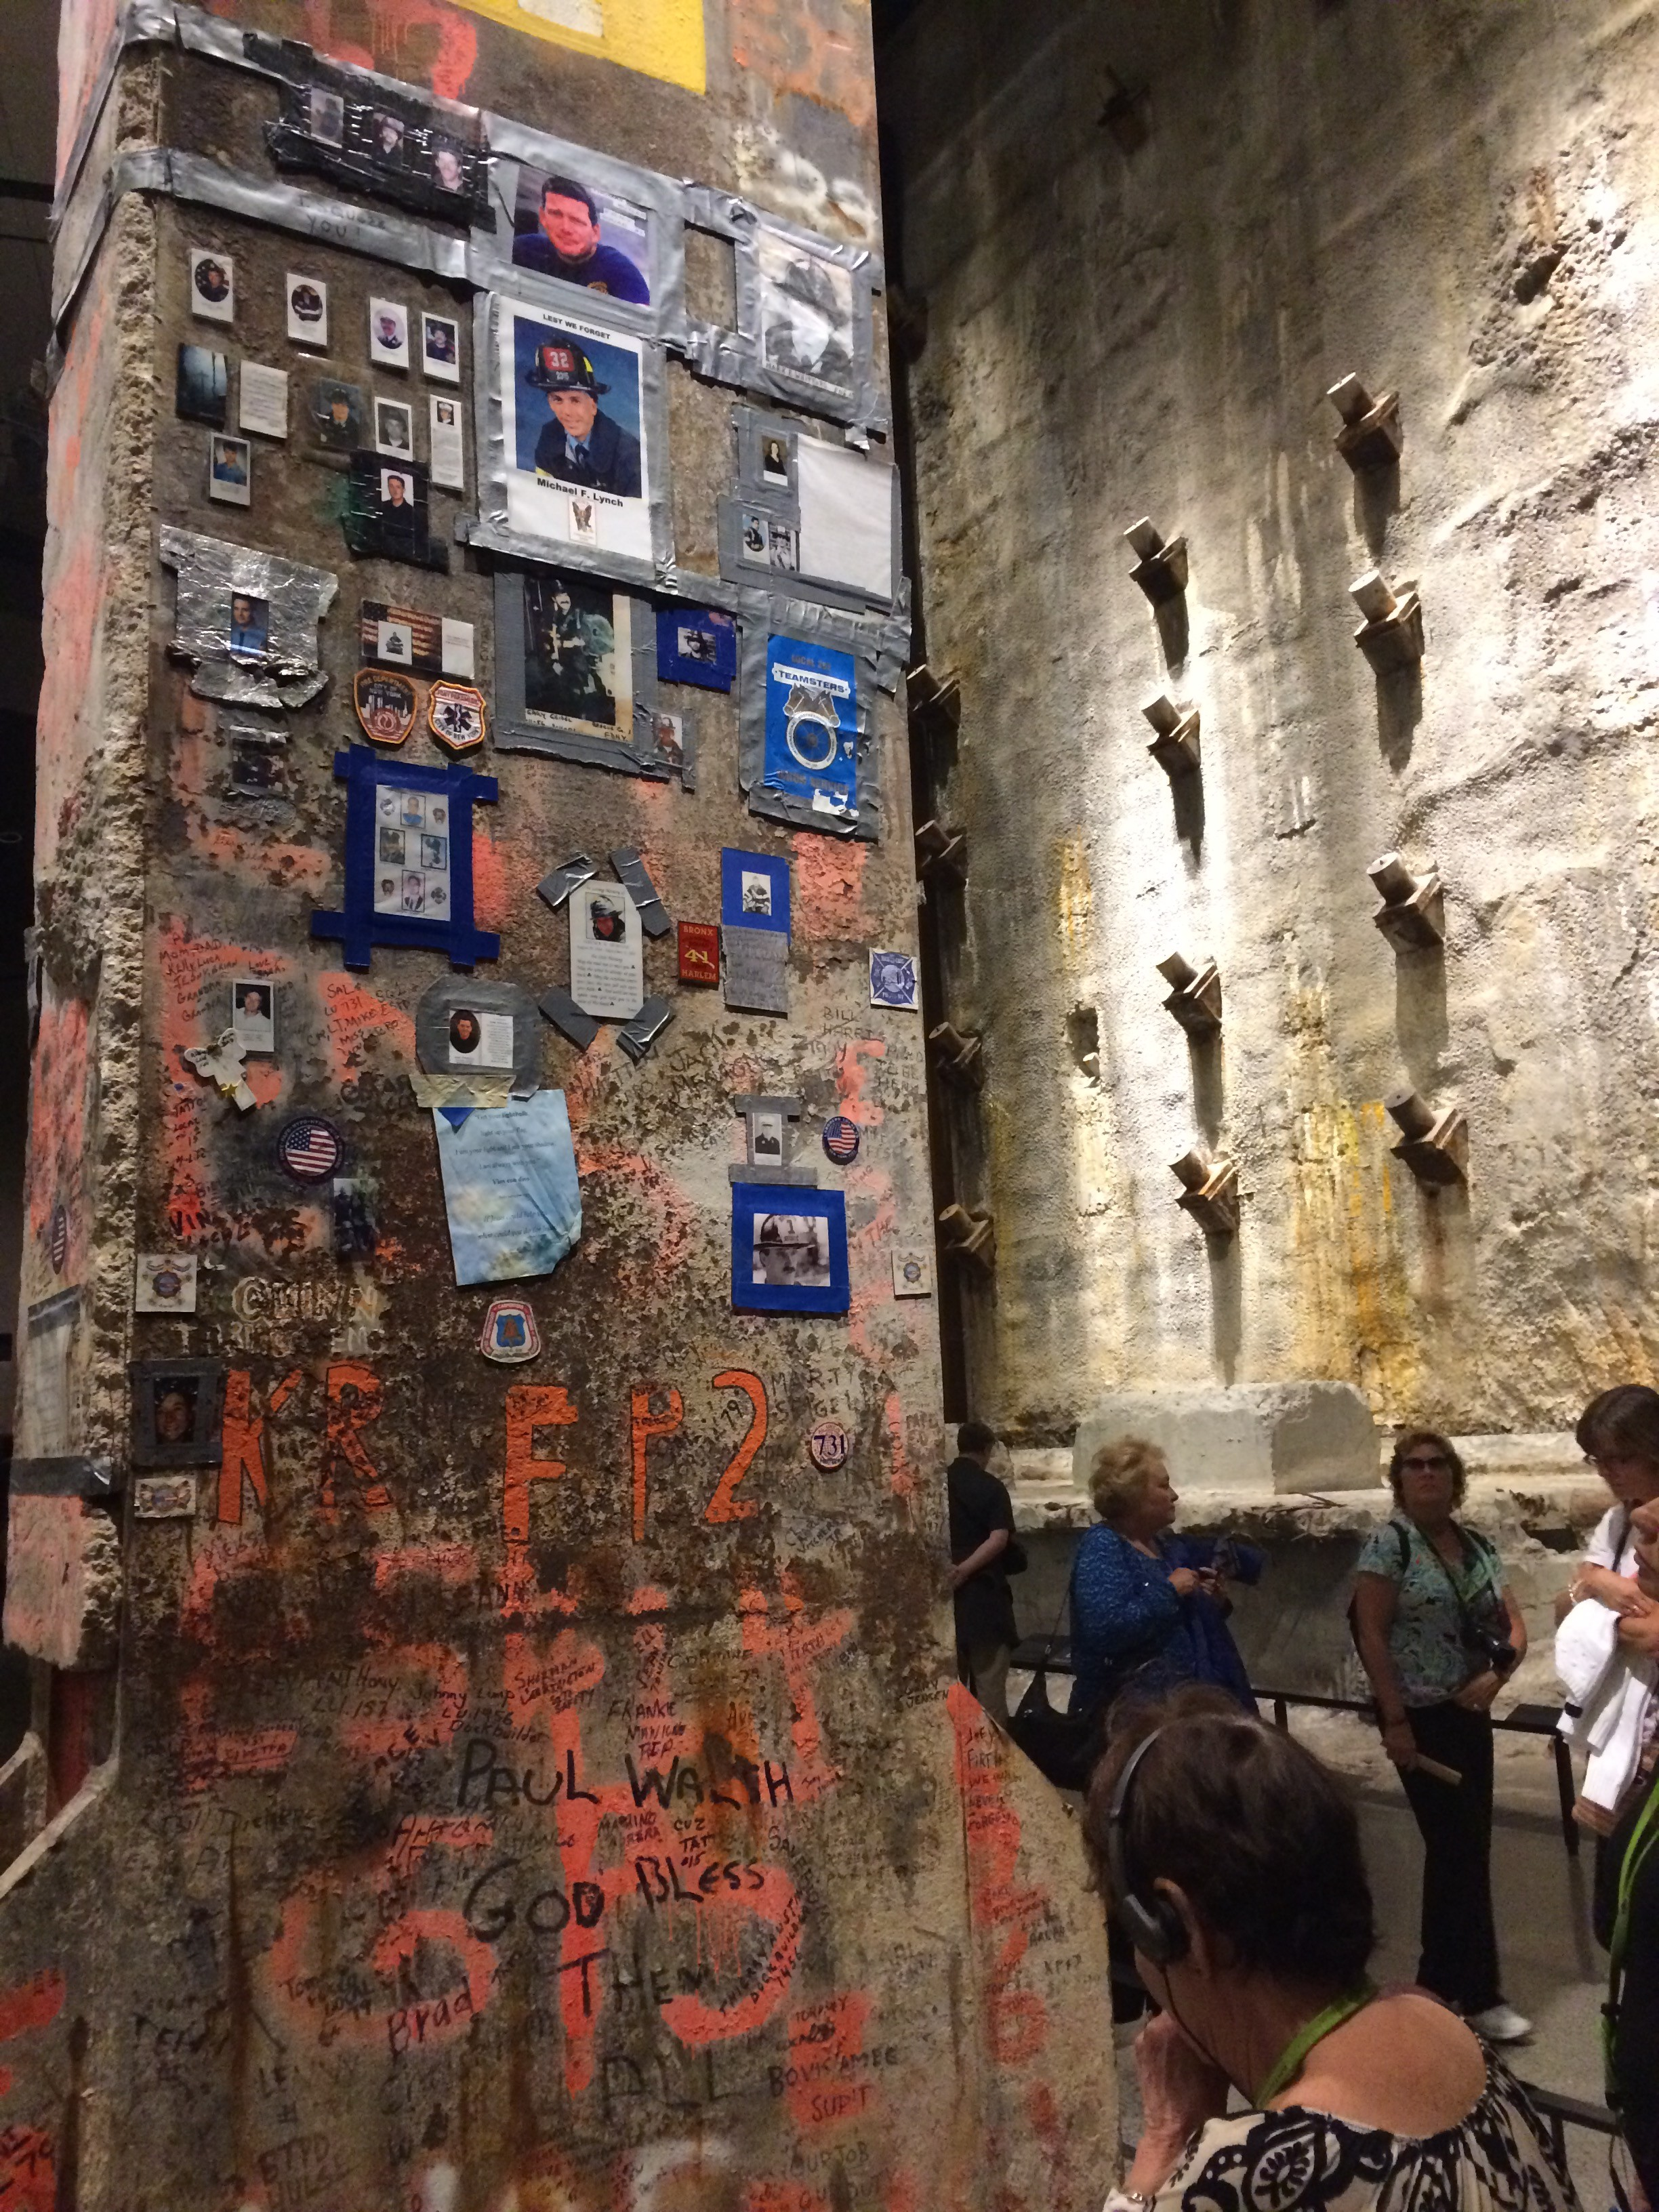 The Last Column is a 58-ton, 36-foot-tall piece of plated steel that was part of the core structure of the World Trade Center's South Tower. It became a makeshift memorial when police, firefighters and other emergency personnel left messages honoring their fallen co-workers. The column is adorned with names, organization stickers, photos, uniform patches and posters.The Last Column is so-named because it was the last- tanding piece of steel during the Ground Zero cleanup. It was stored at Kennedy Airport until 2009 when it was installed in the museum's Foundation Hall. The museum opened May 2014. The slurry wall, to the right, was part of the WTC's foundation. Built to hold back the waters of the Hudson River, it made construction of the towers possible.